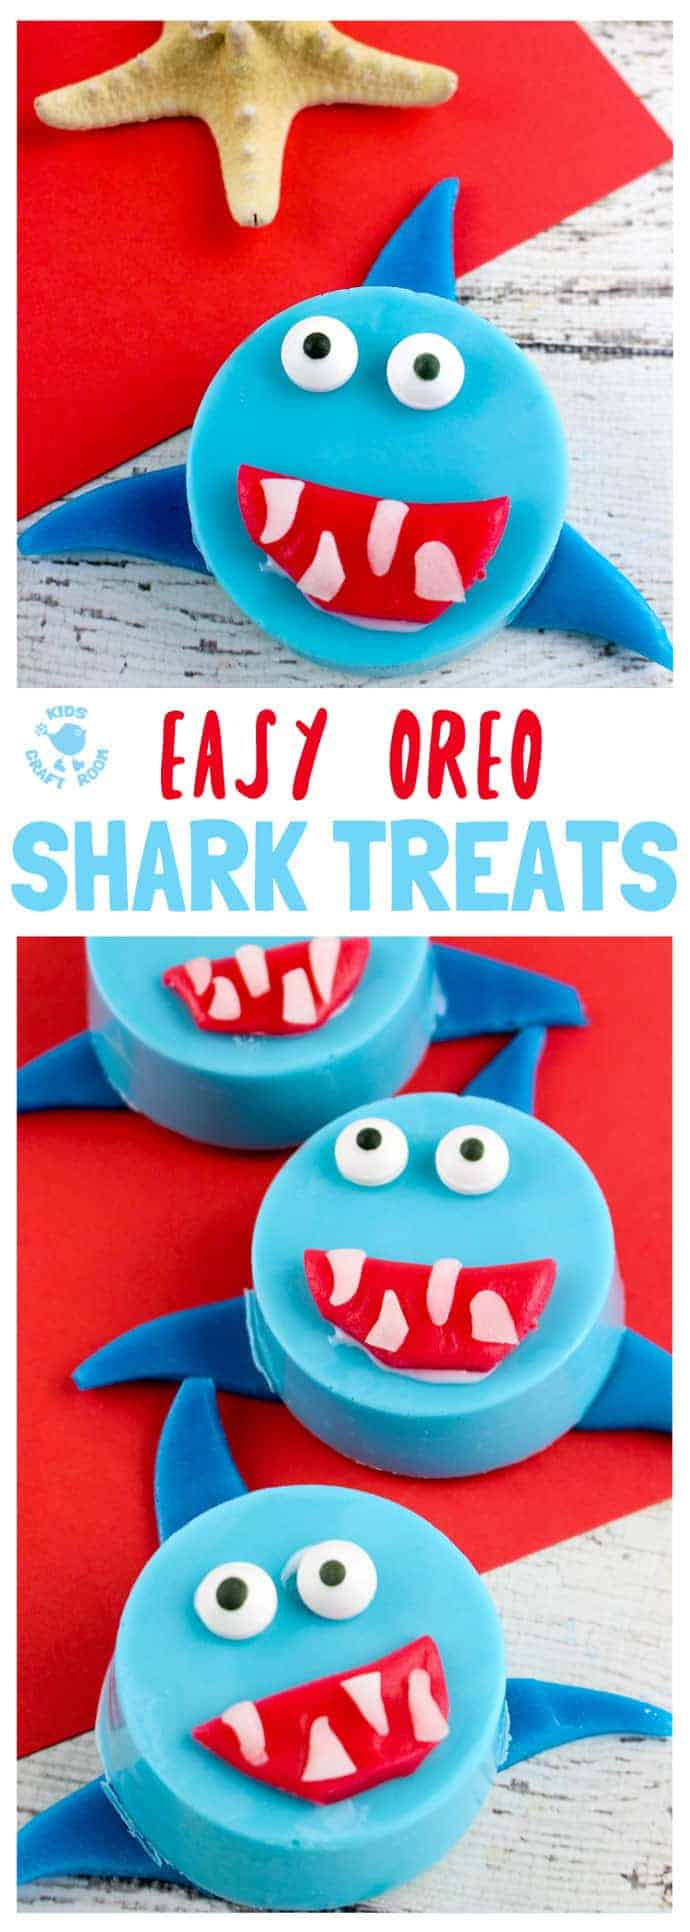 OREO SHARK TREATS are great for cooking with kids. A fin-tastic Summer activity perfect for shark week and ocean themes. Shark Cookies taste delicious and look adorable!